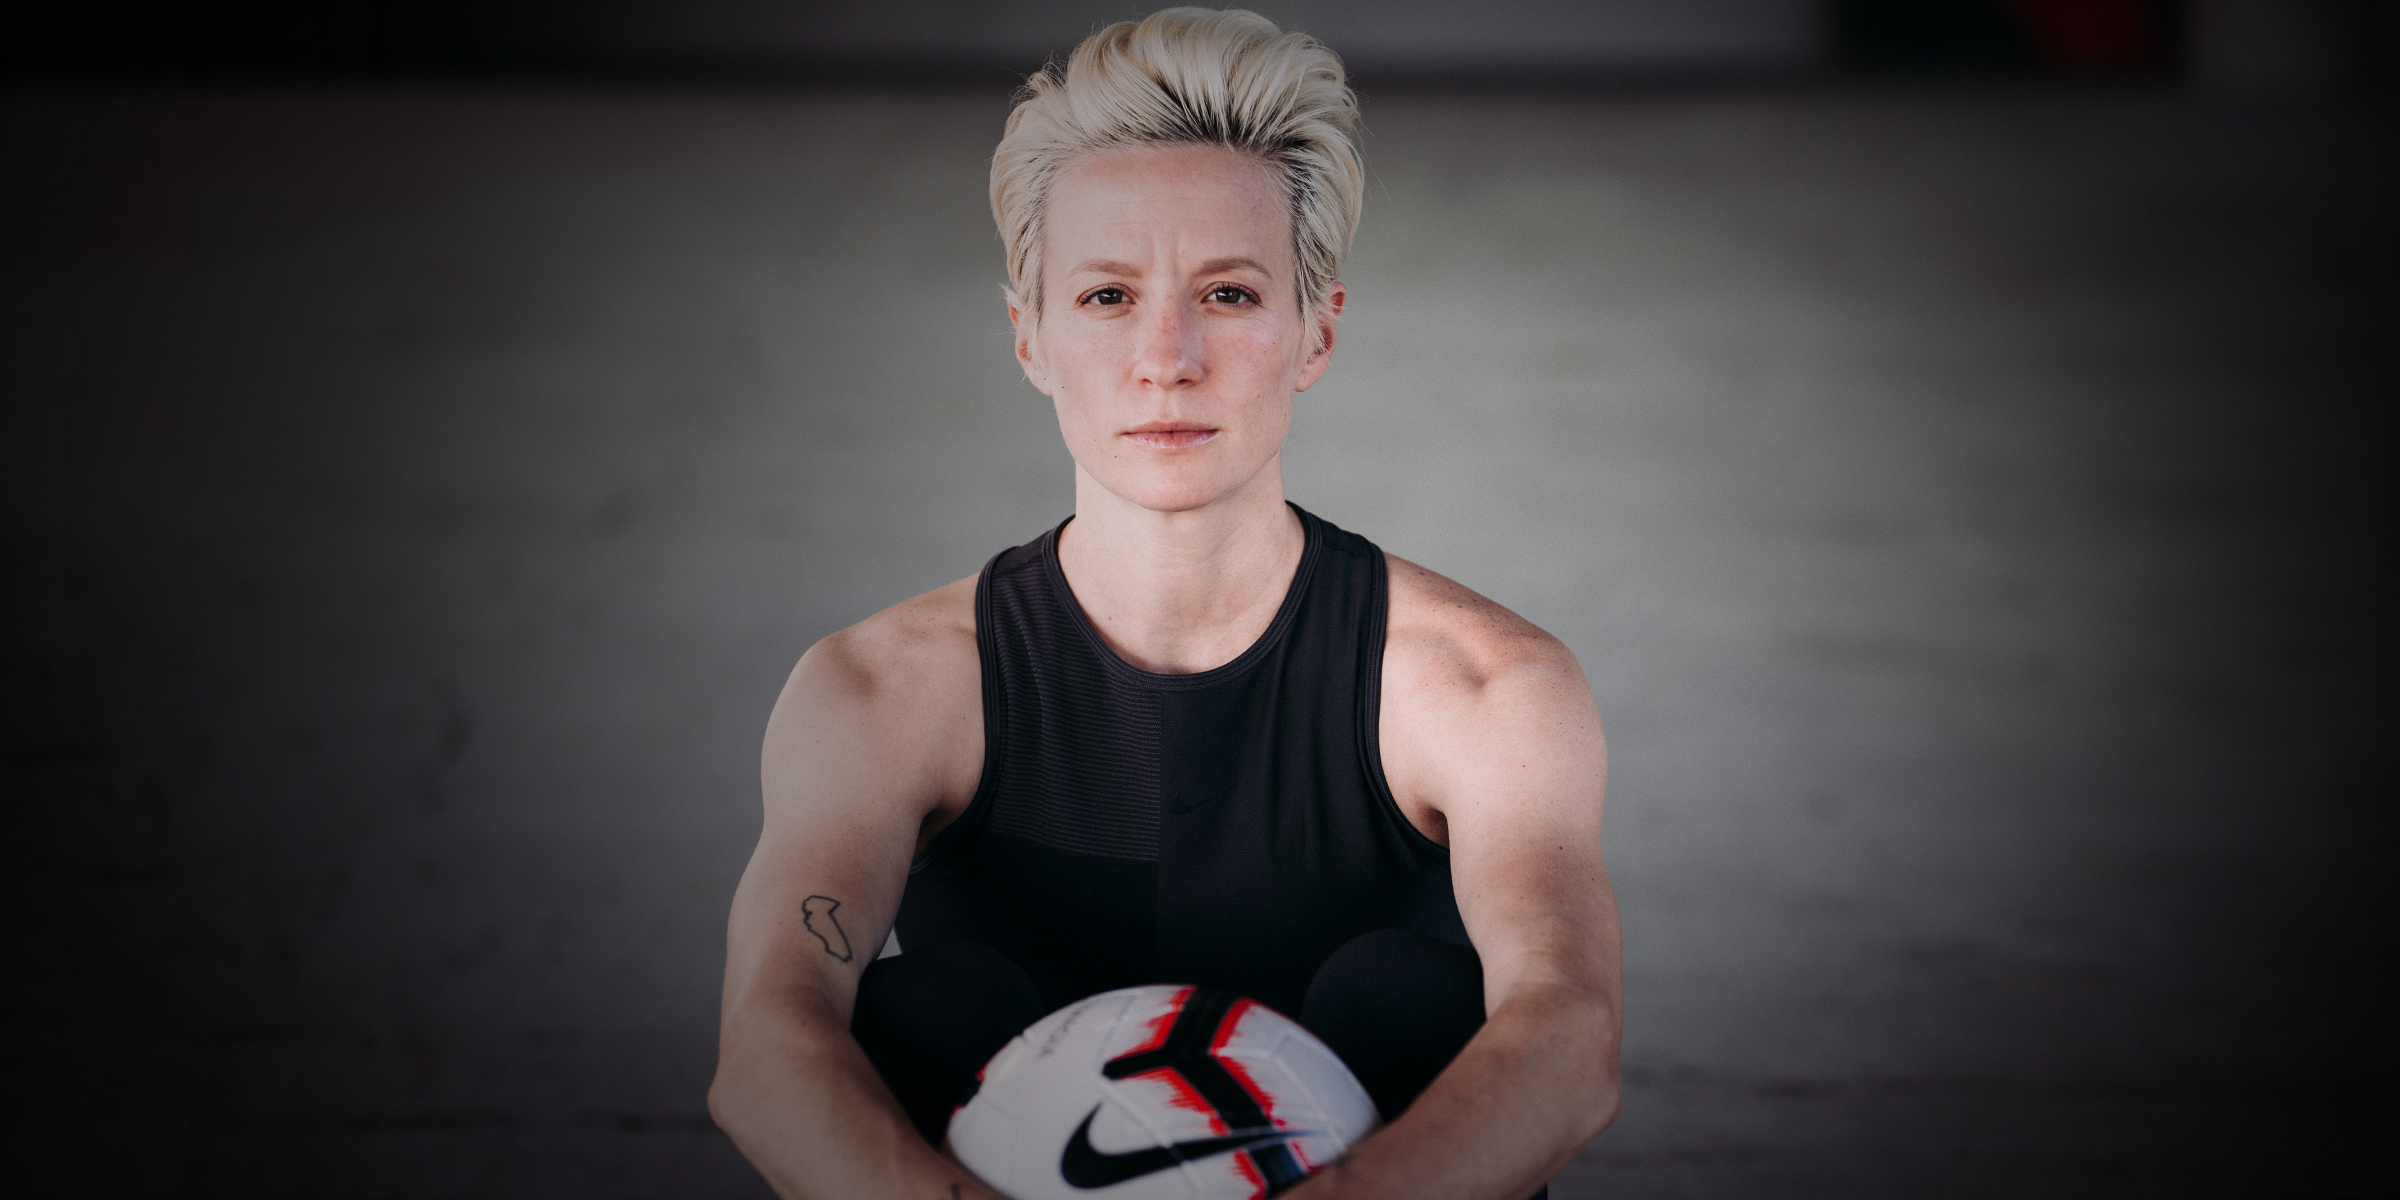 You Can't Get Rid of Your Girl That Easily   By Megan Rapinoe